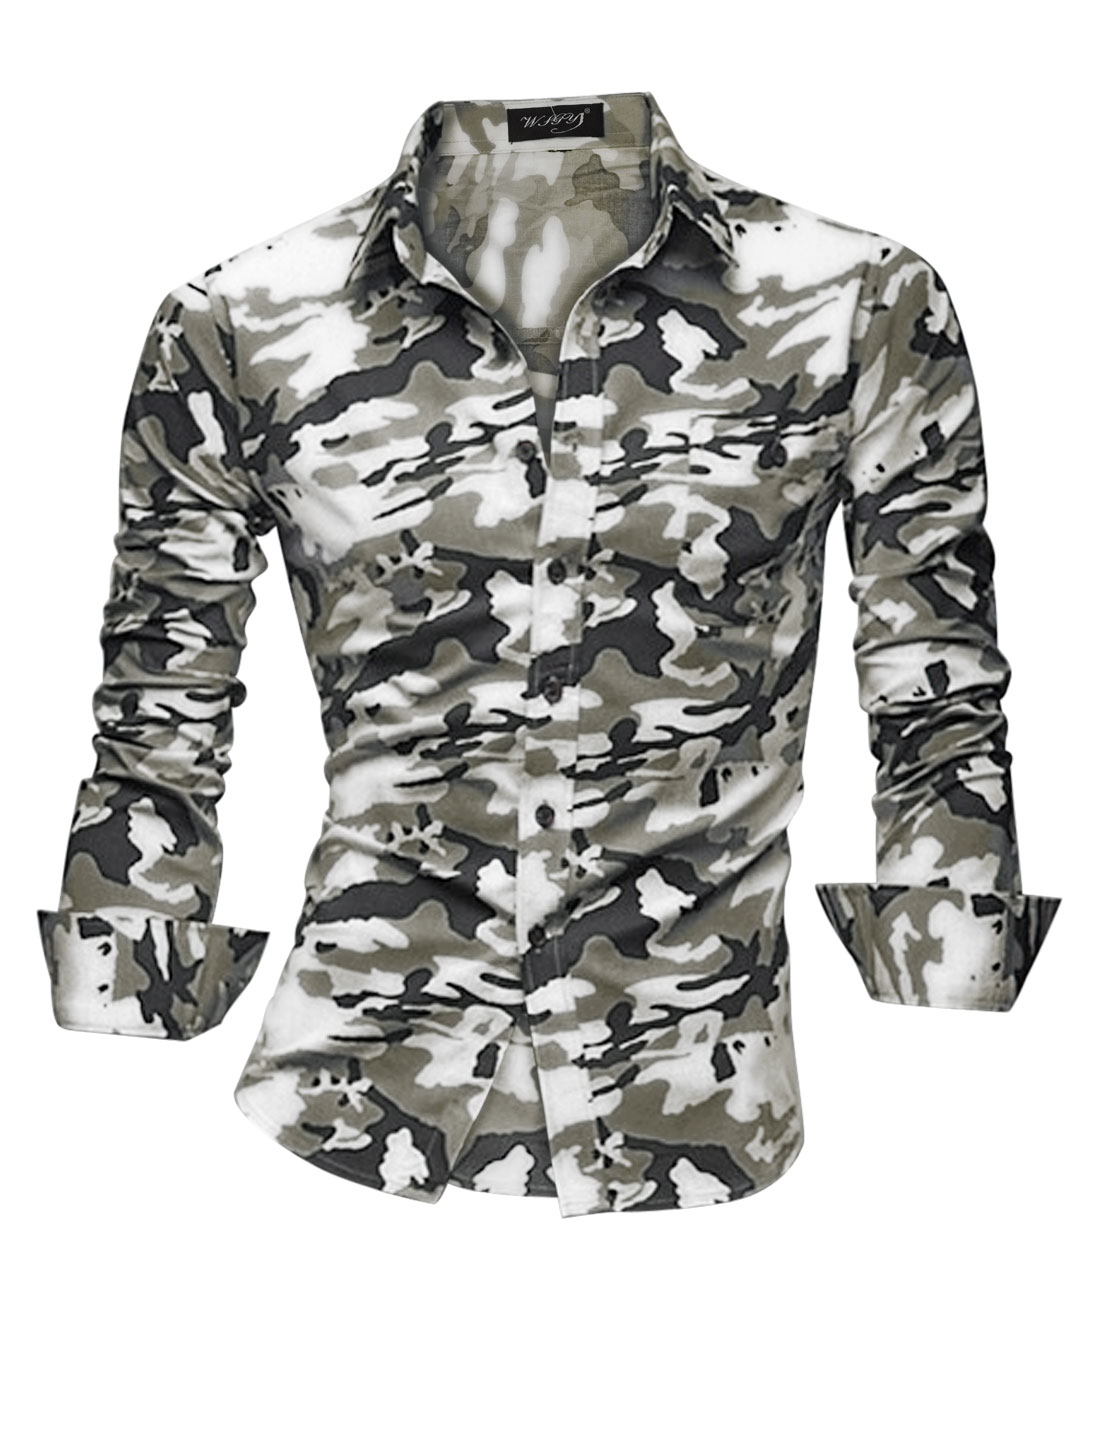 Men Point Collar One Pocket Camo Print Casual Button Down Shirt White Army Green M